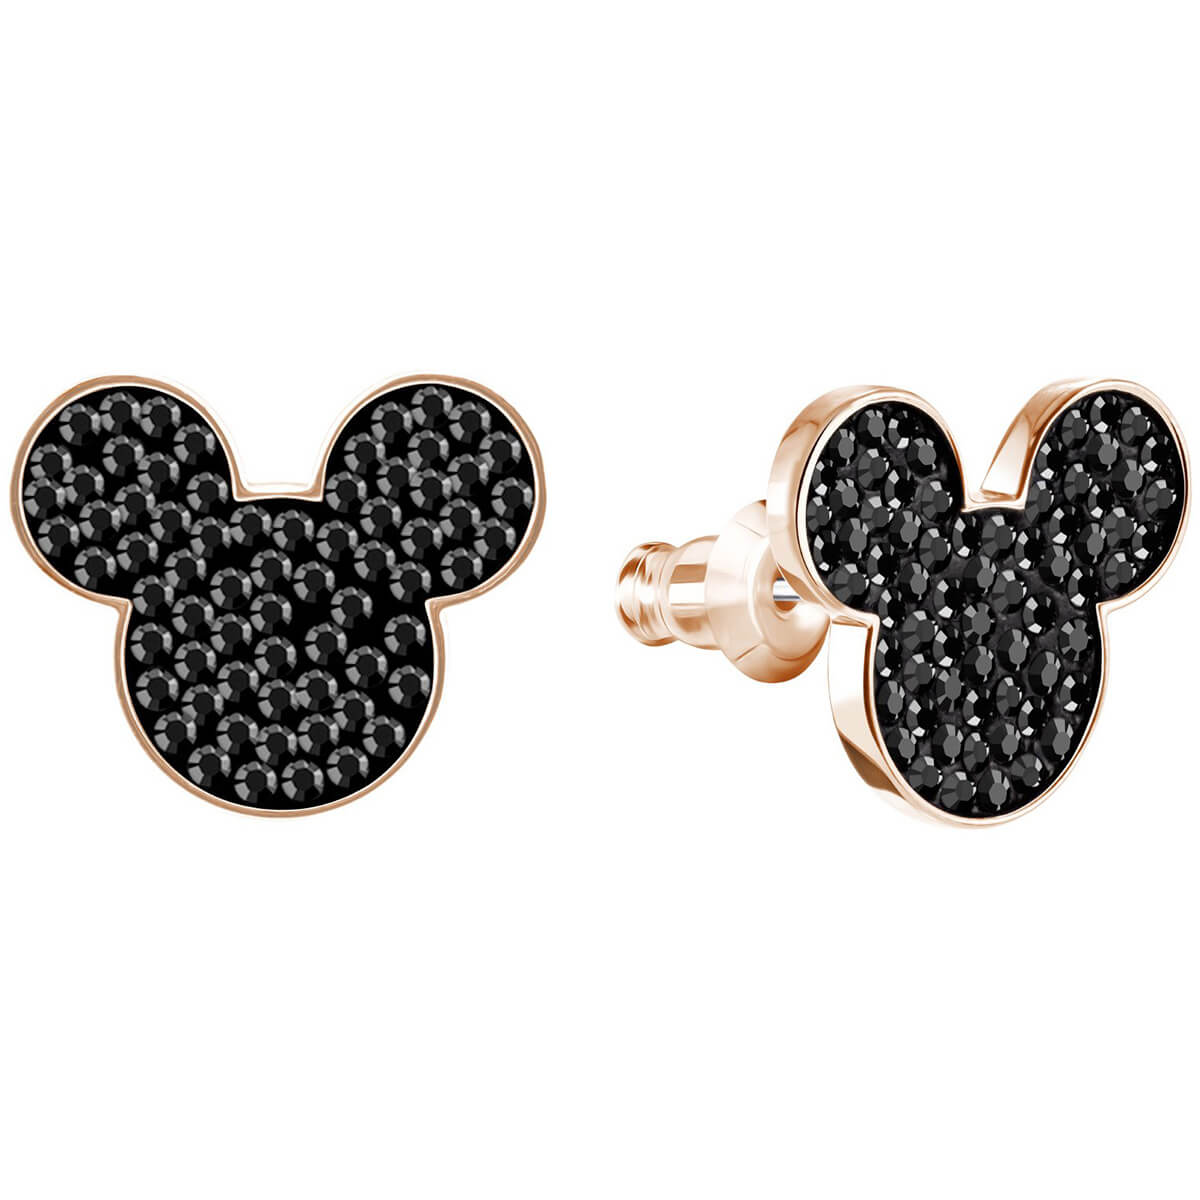 Swarovski Earrings Mickey mouse Minnie, black, pink gold-plated 5435137